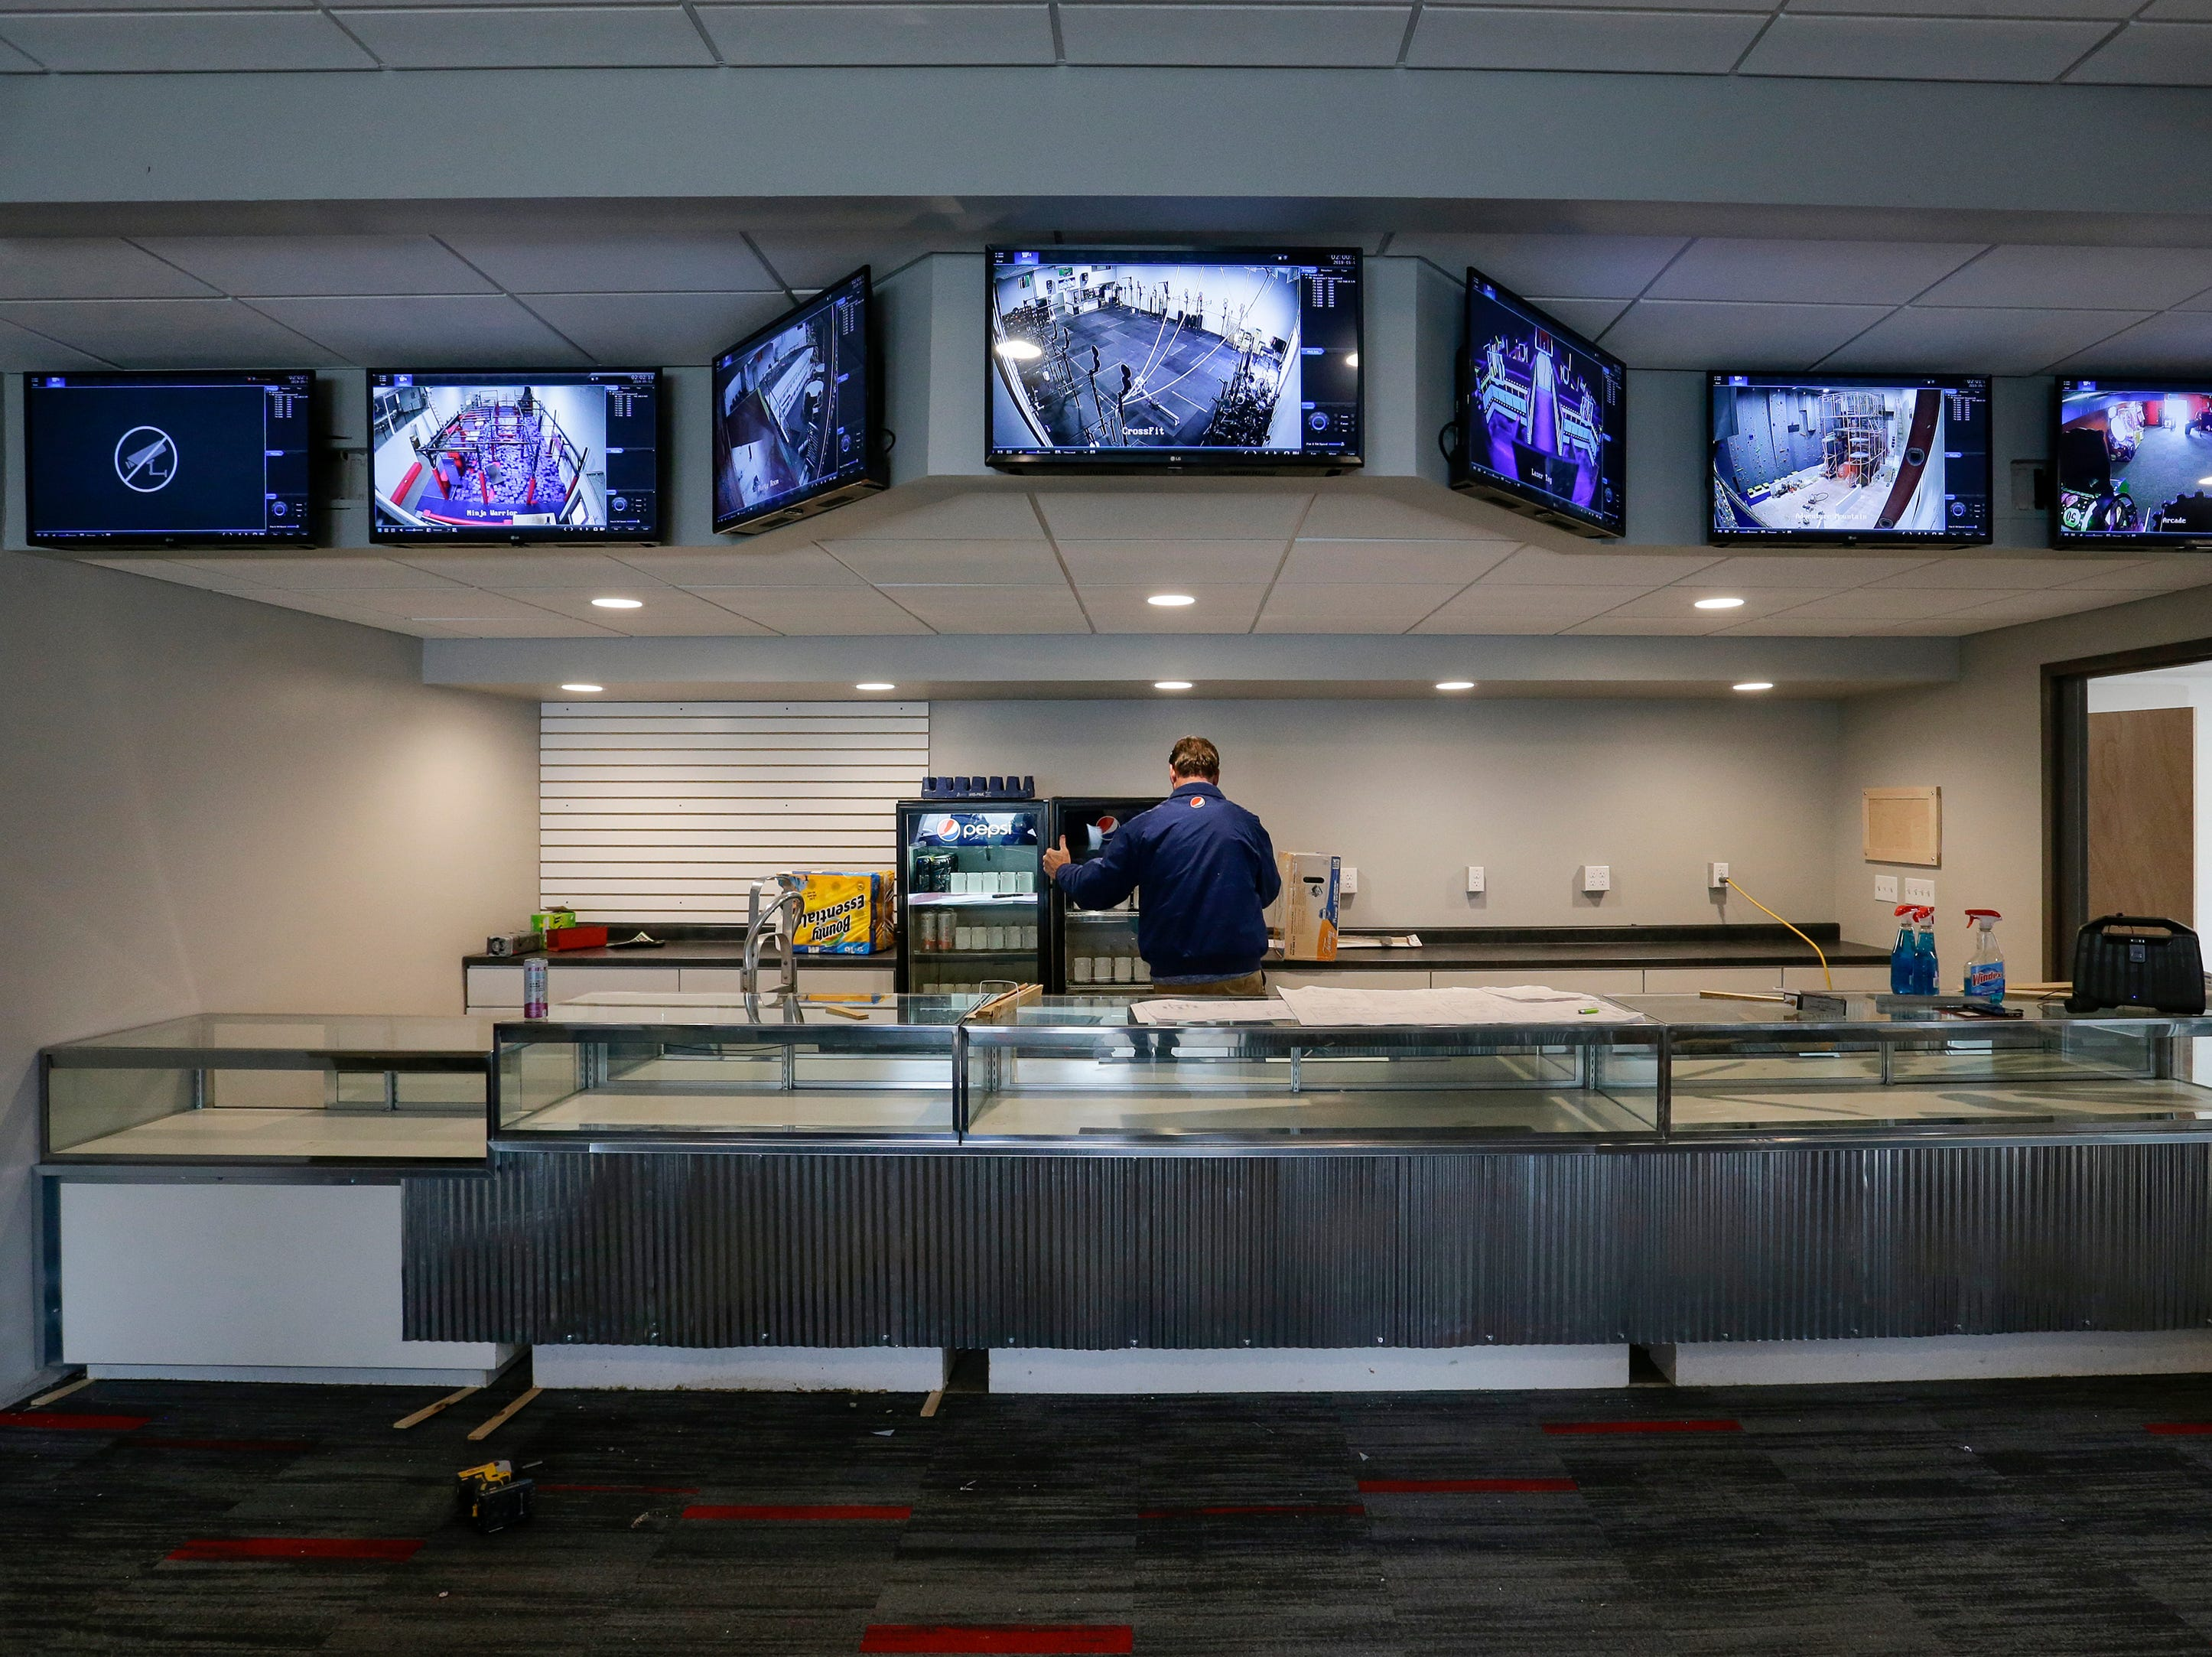 The lobby at Strand Adventures Wednesday, May 1, 2019, in Manitowoc, Wis. Joshua Clark/USA TODAY NETWORK-Wisconsin